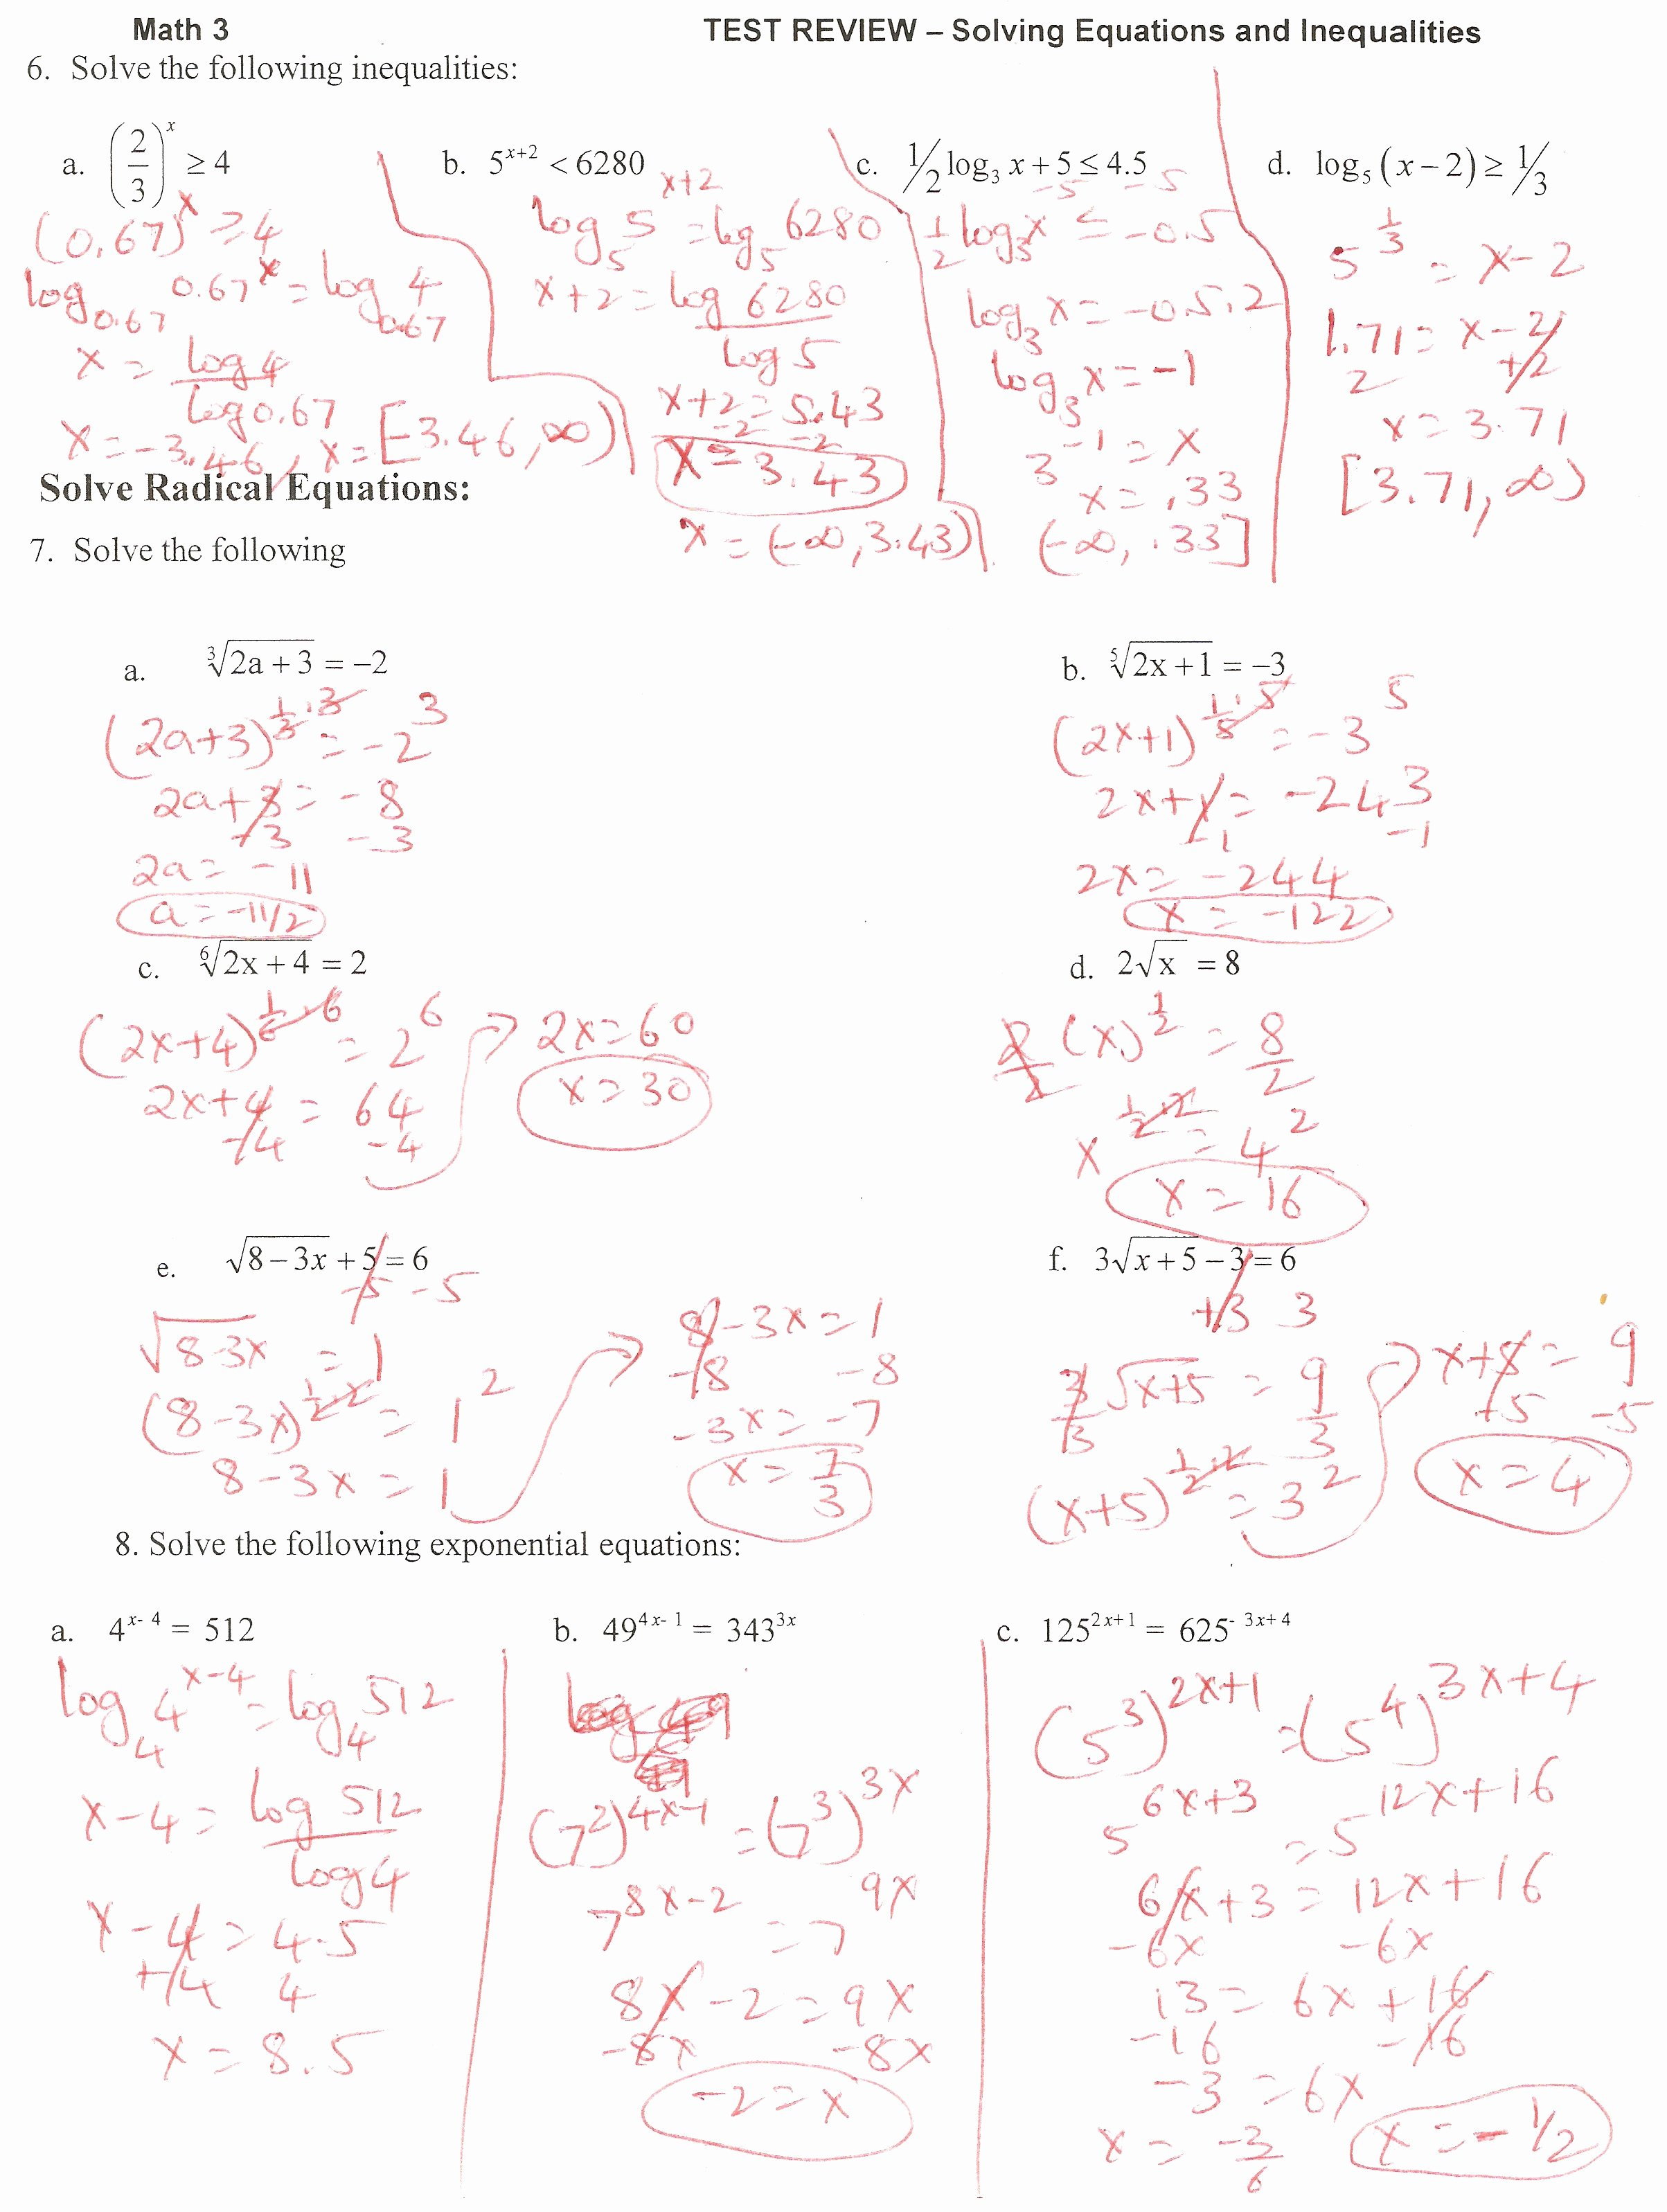 Logarithmic Equations Worksheet with Answers Elegant 7 4 solving Logarithmic Equations and Inequalities Answers